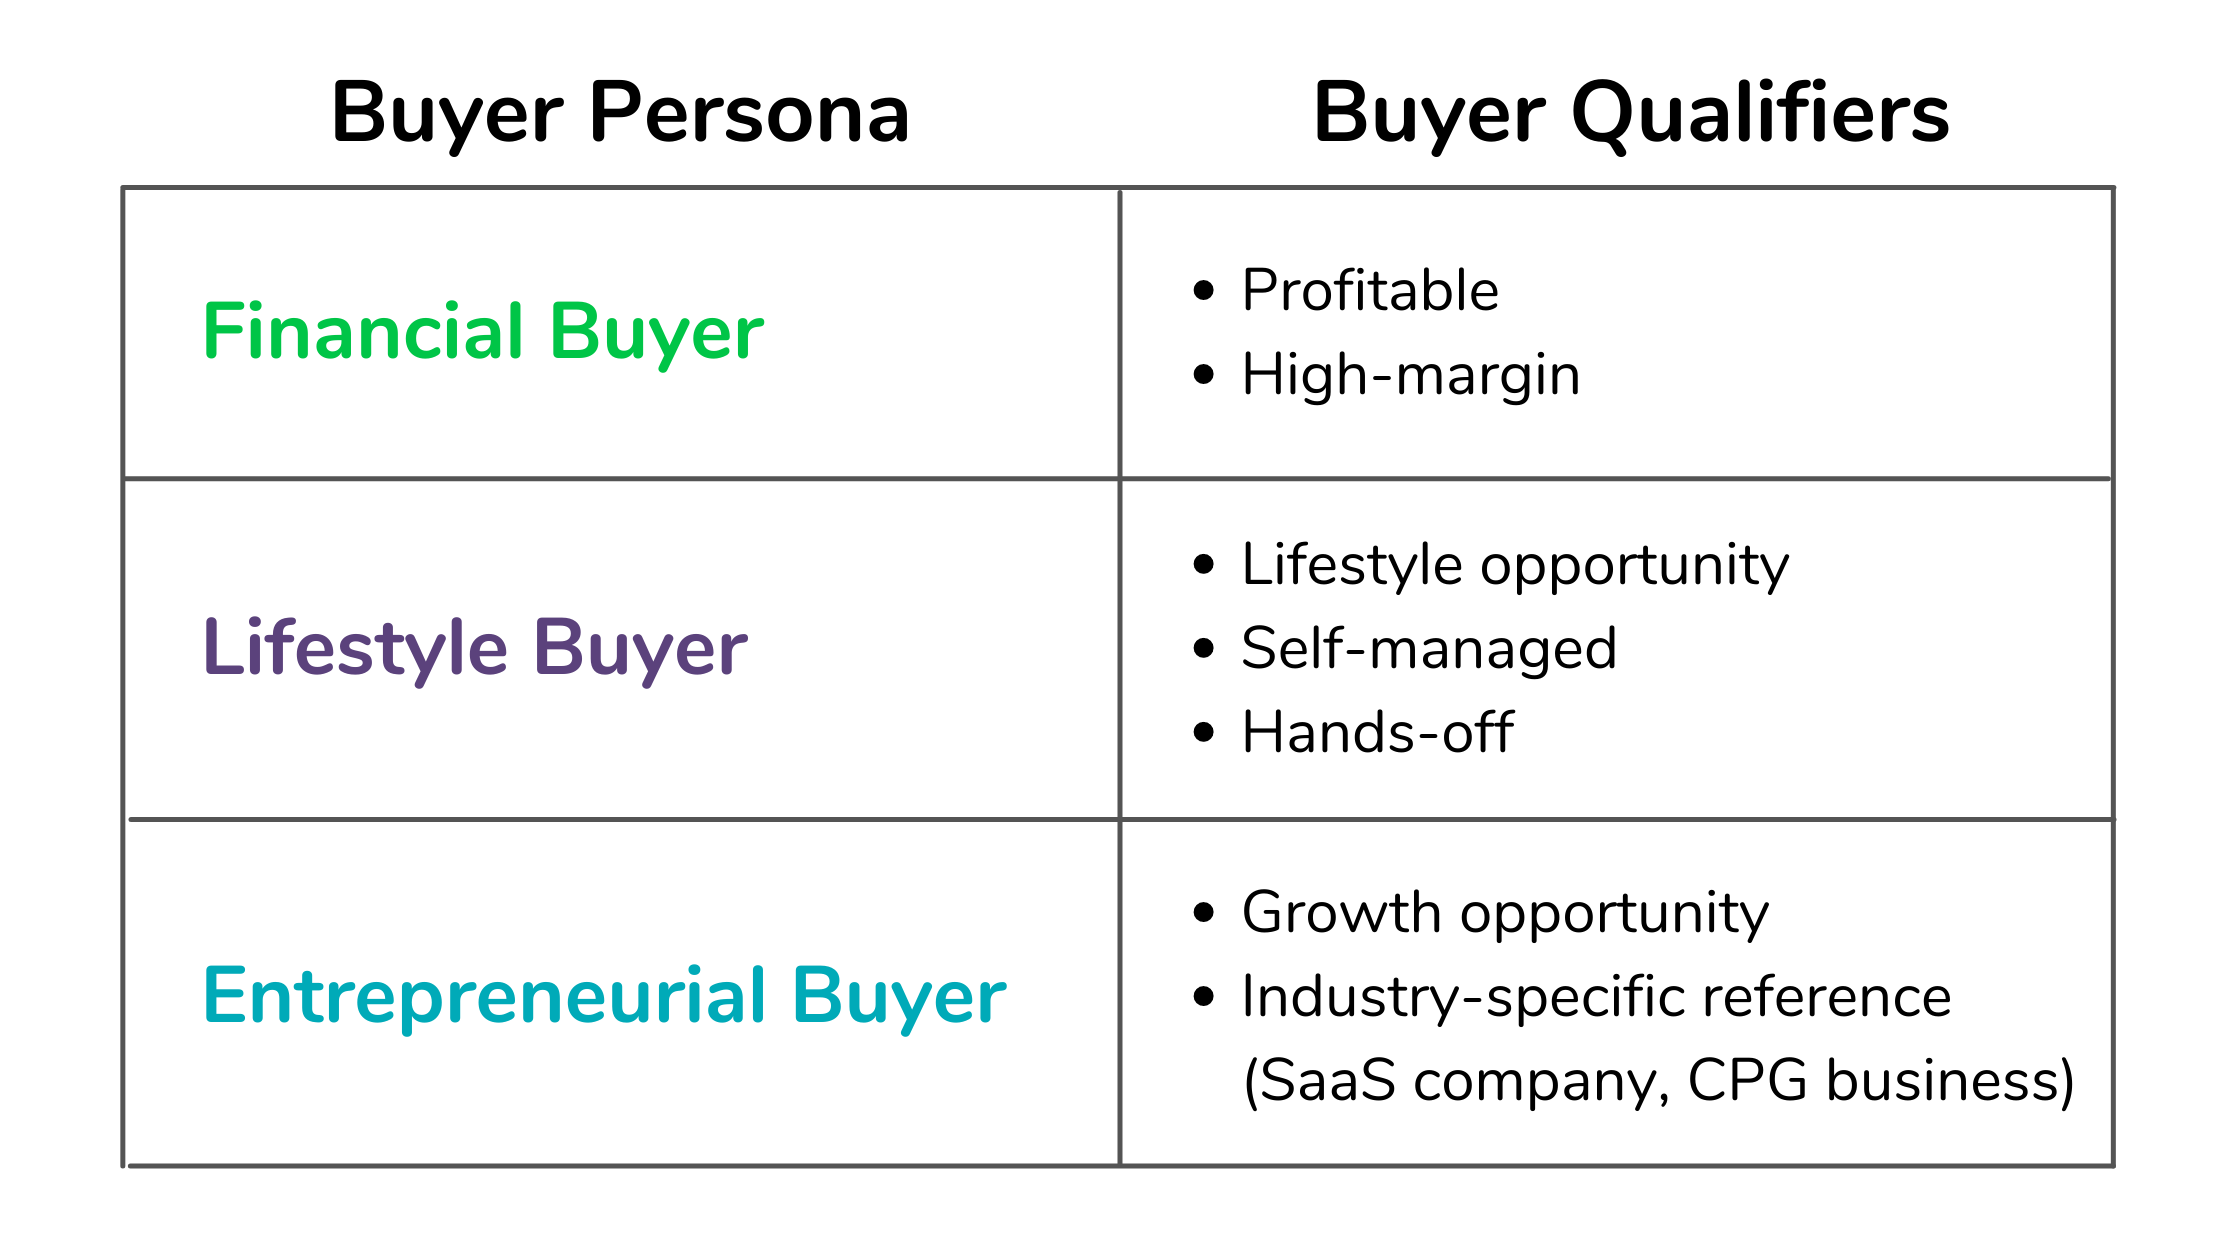 Image breaking down the various buyer personas and their various qualifiers